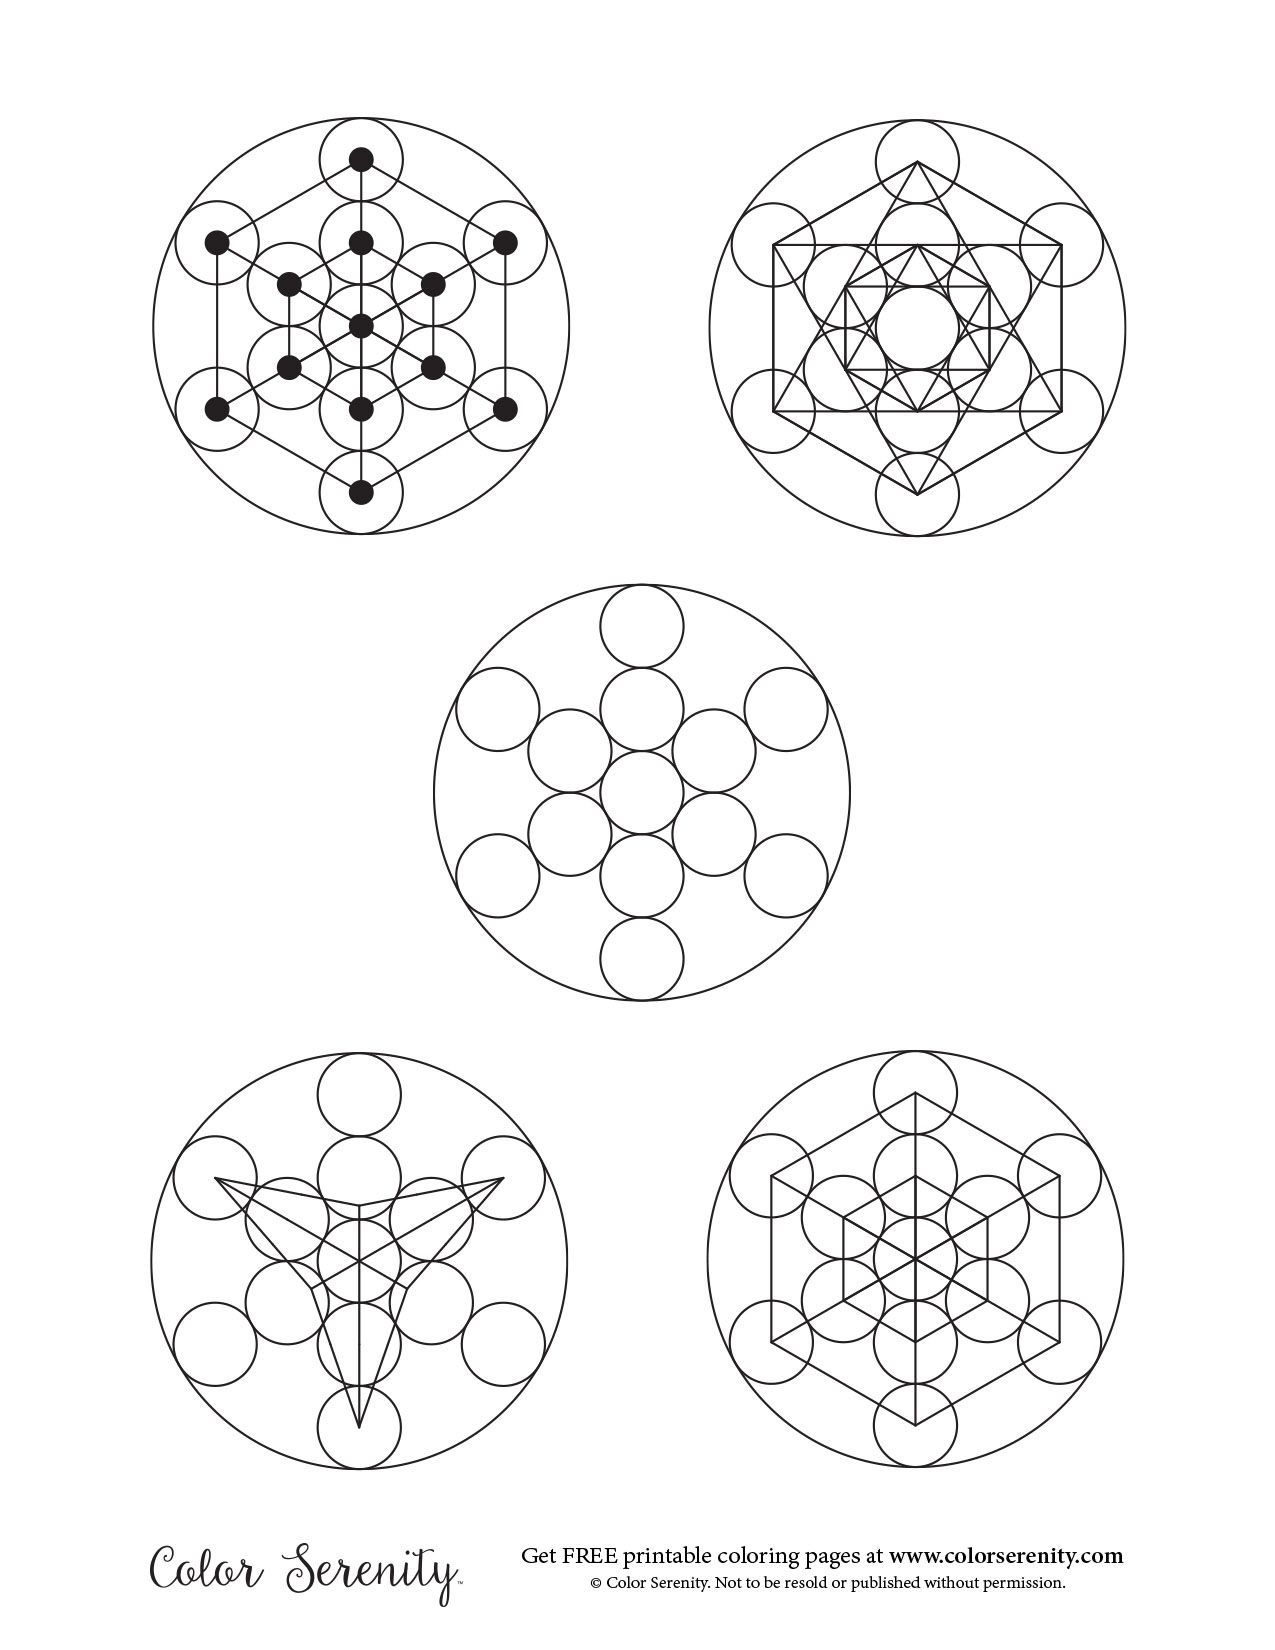 Pin By Color Serenity On Free Coloring Pages